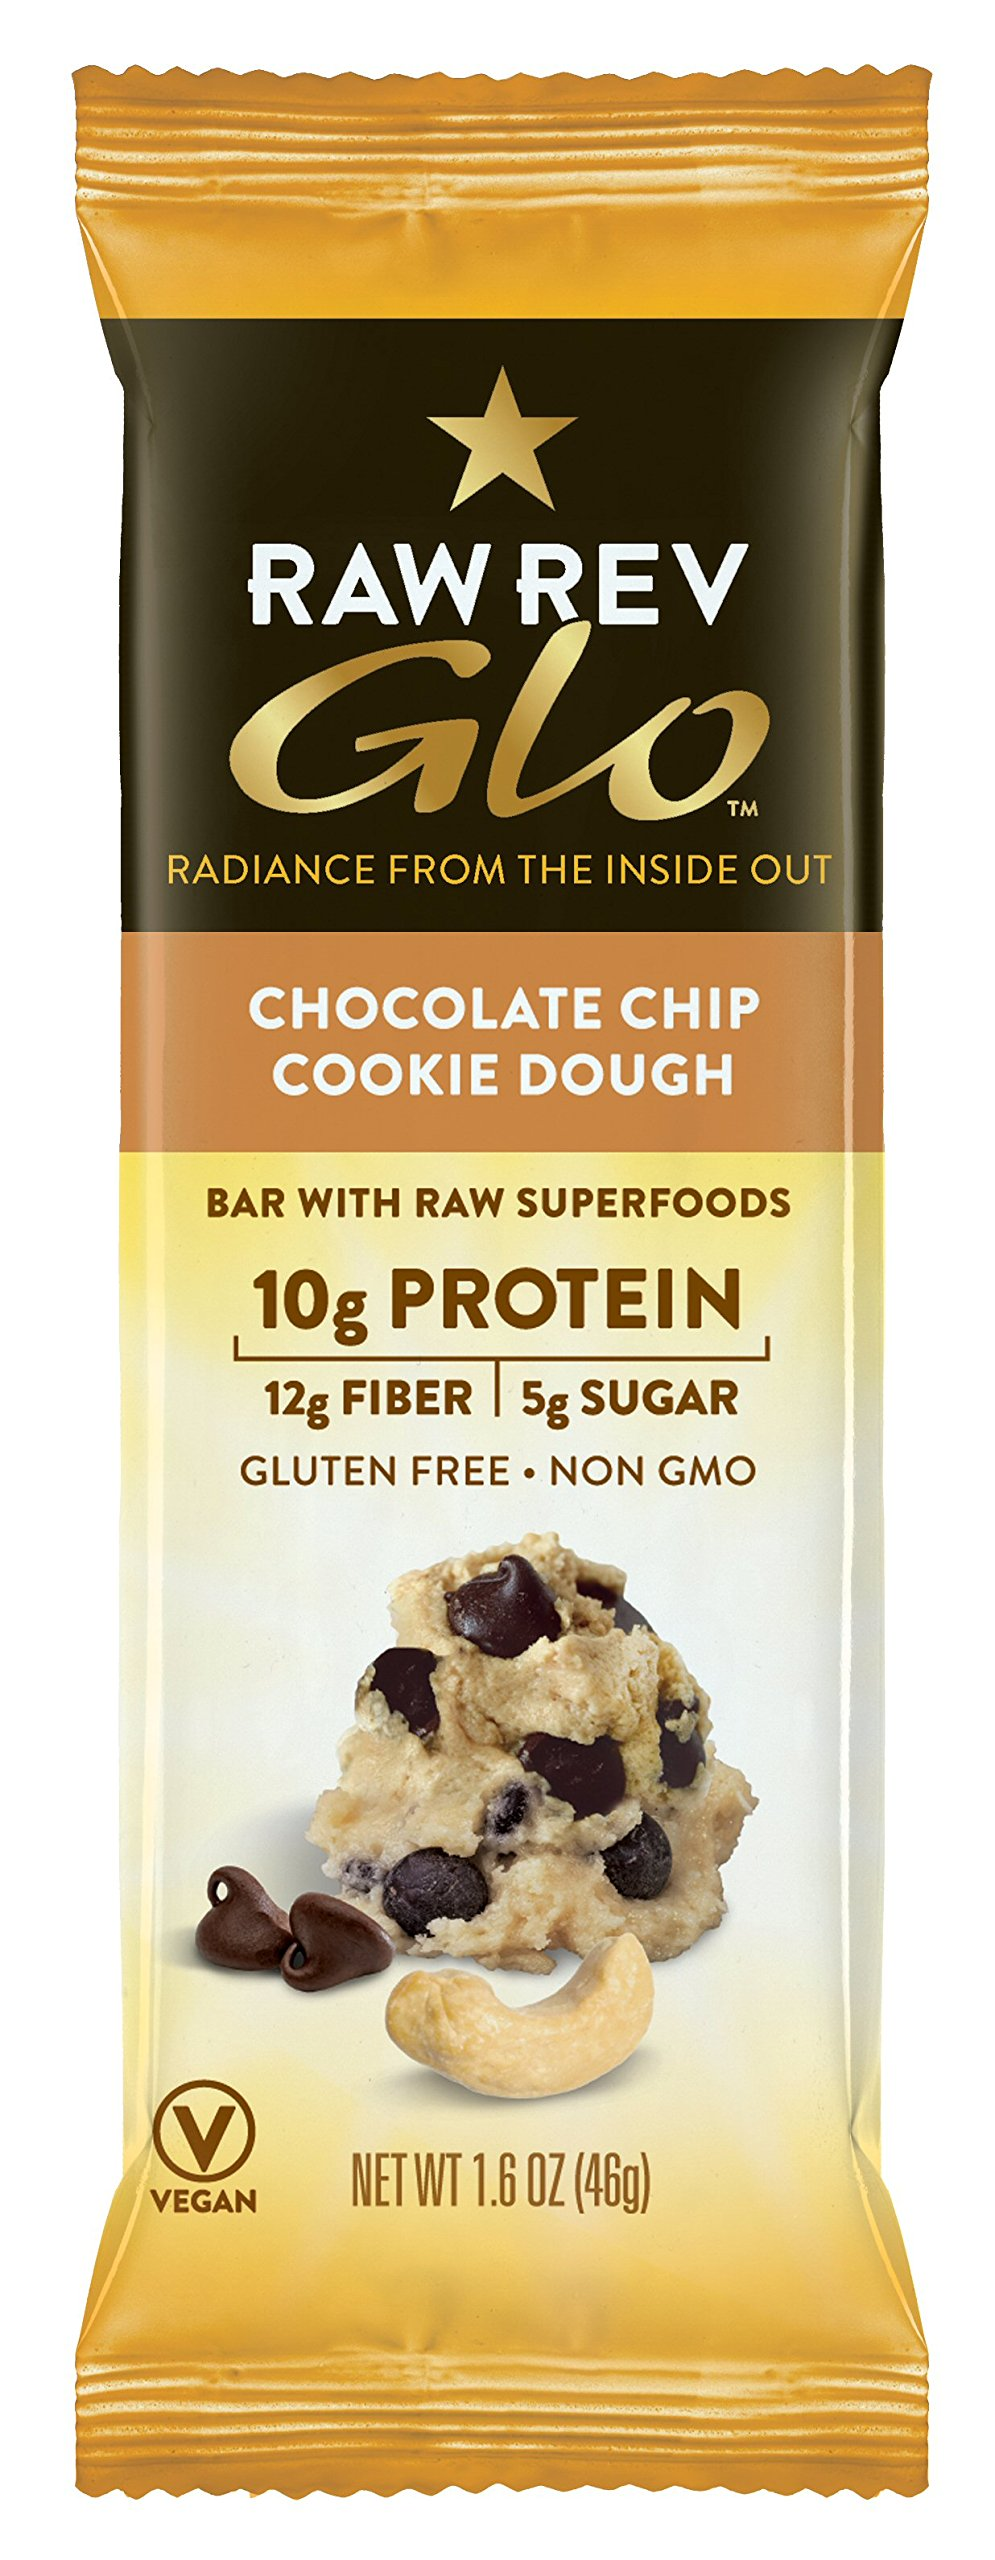 Raw Rev Glo Vegan, Gluten-Free Protein Bars - Chocolate Chip Cookie Dough 1.6 ounce (Pack of 12)